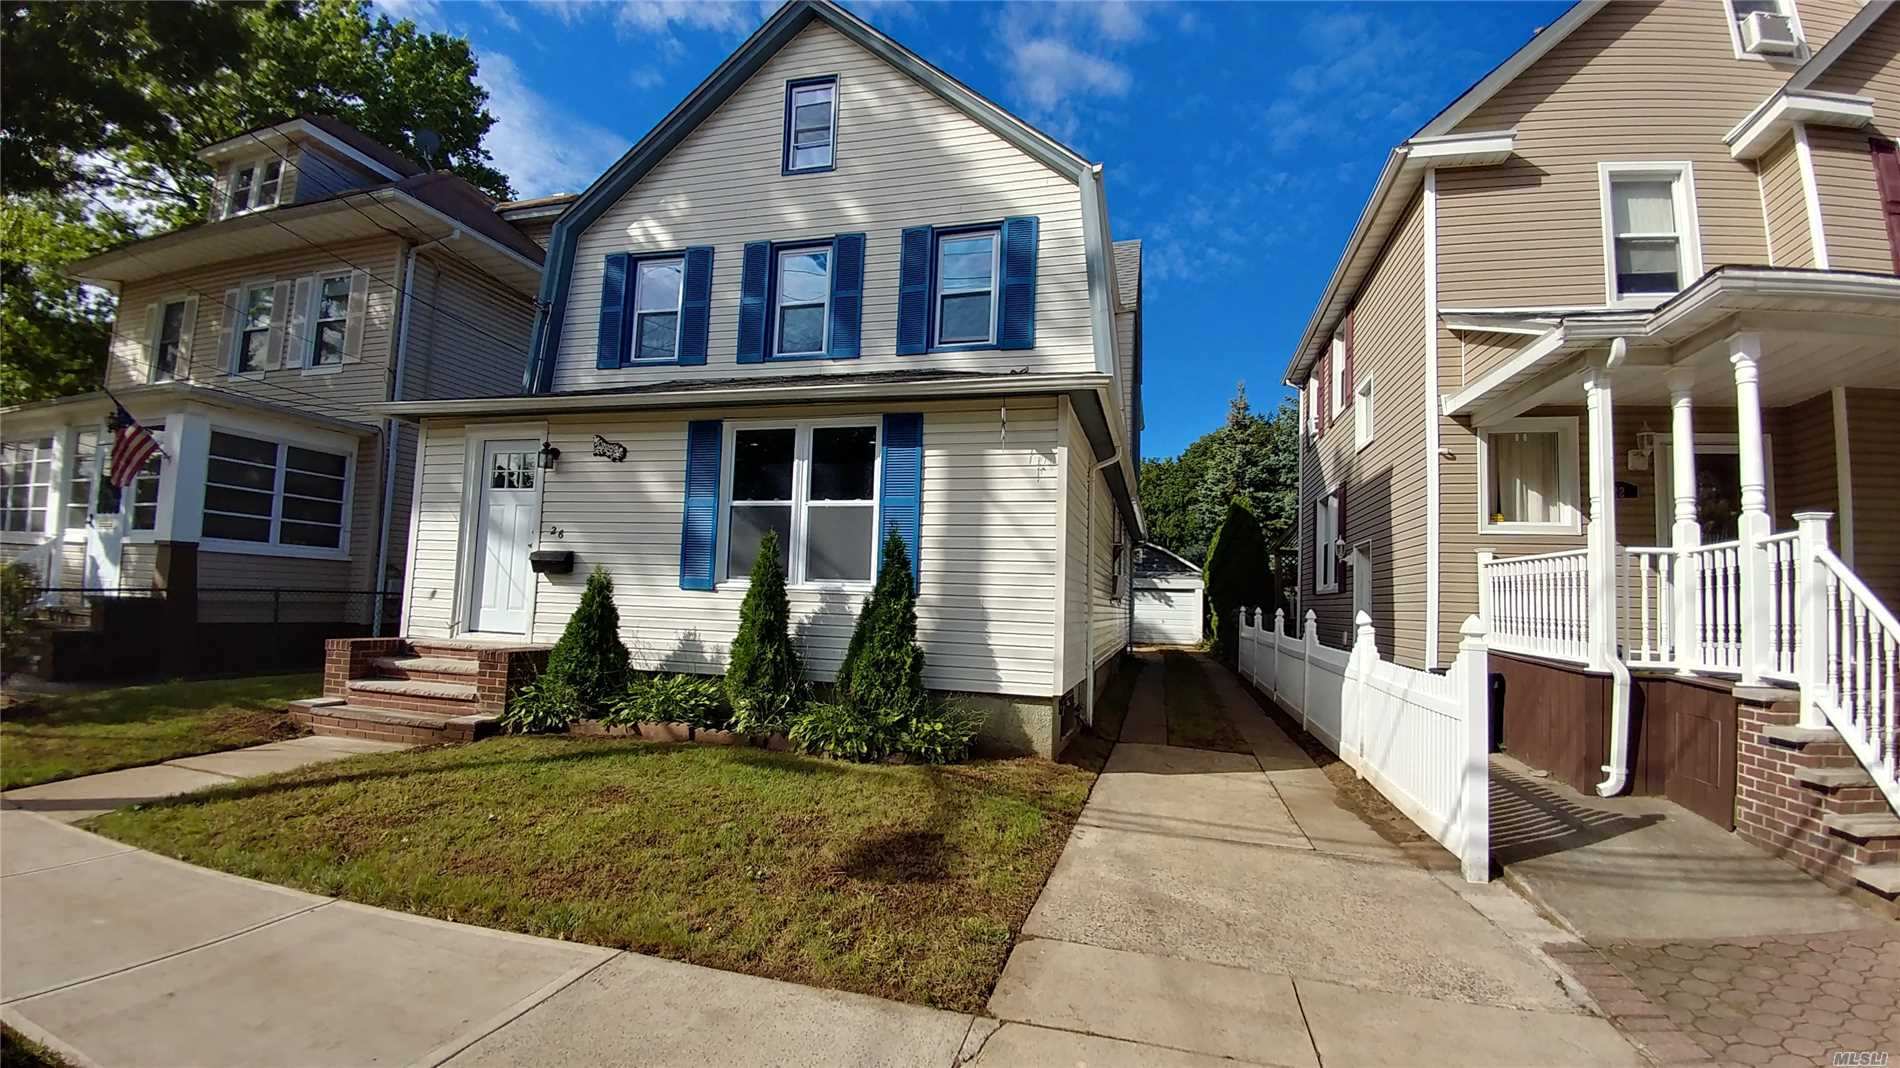 Welcome To Beautiful Floral Park. If You Are Looking For Move In Ready Home, Then Don't Look Any Further. This Newly Updated House Is Spectacular. The Bedrooms Are Spacious. The House Is Walking Distance To Lirr, Village, Restaurants And Elementary School. This House Is Just Waiting For You To Call It Home.